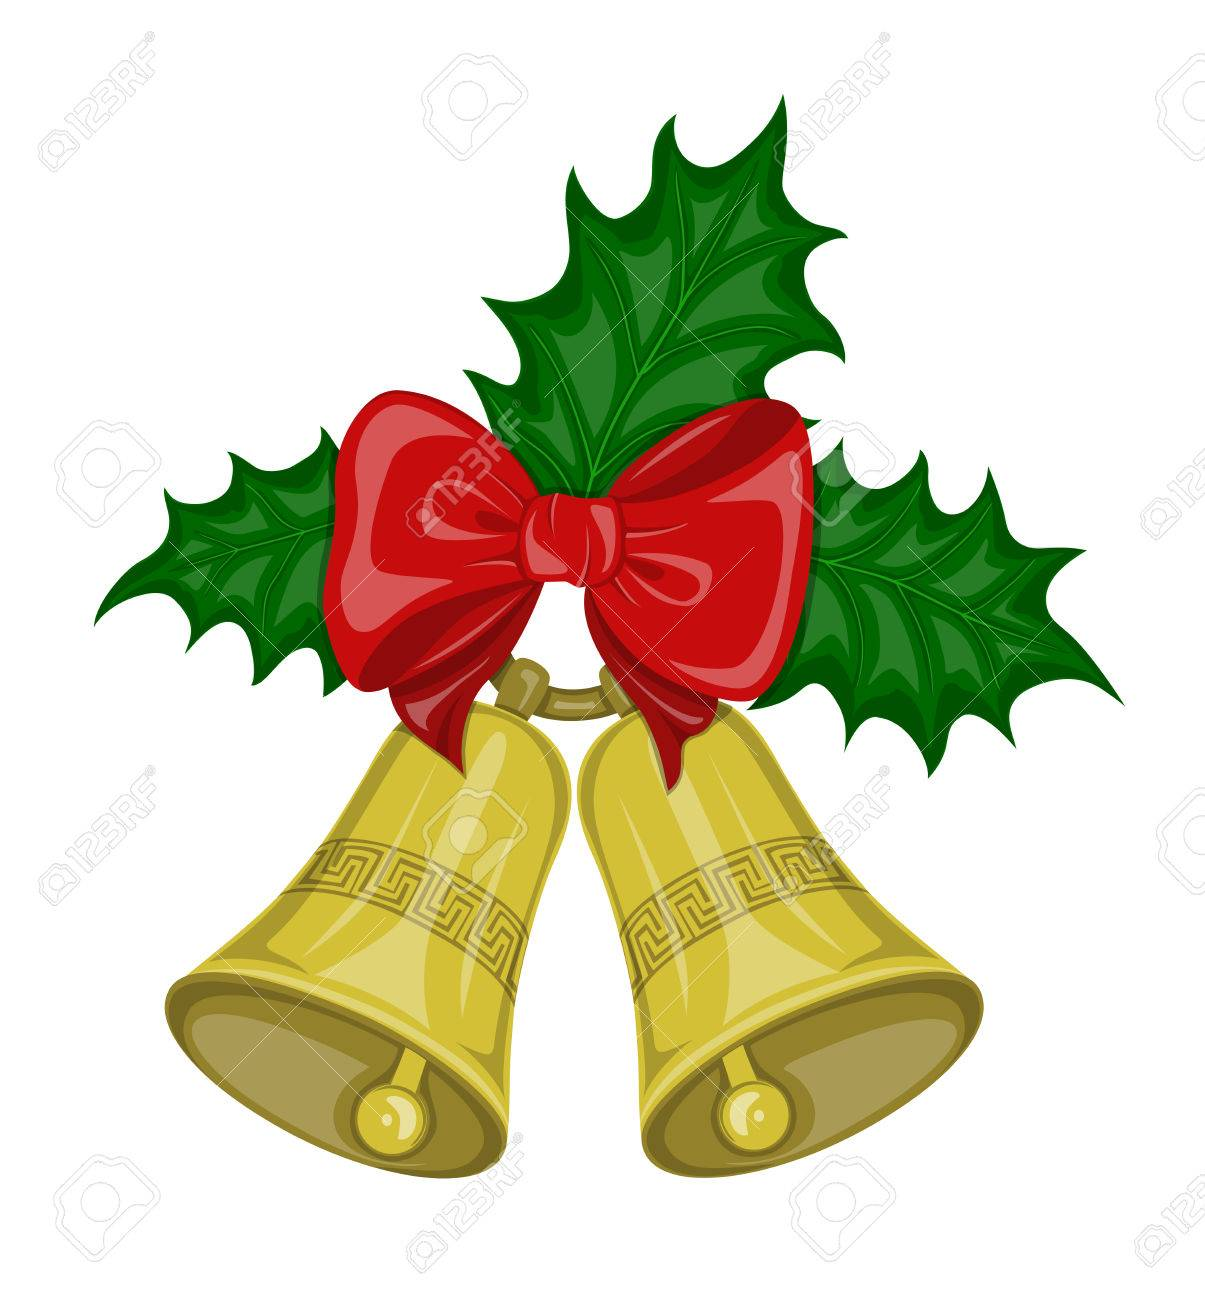 Christmas Ring.Two Christmas Bells Golden Color On The Ring With Decorative